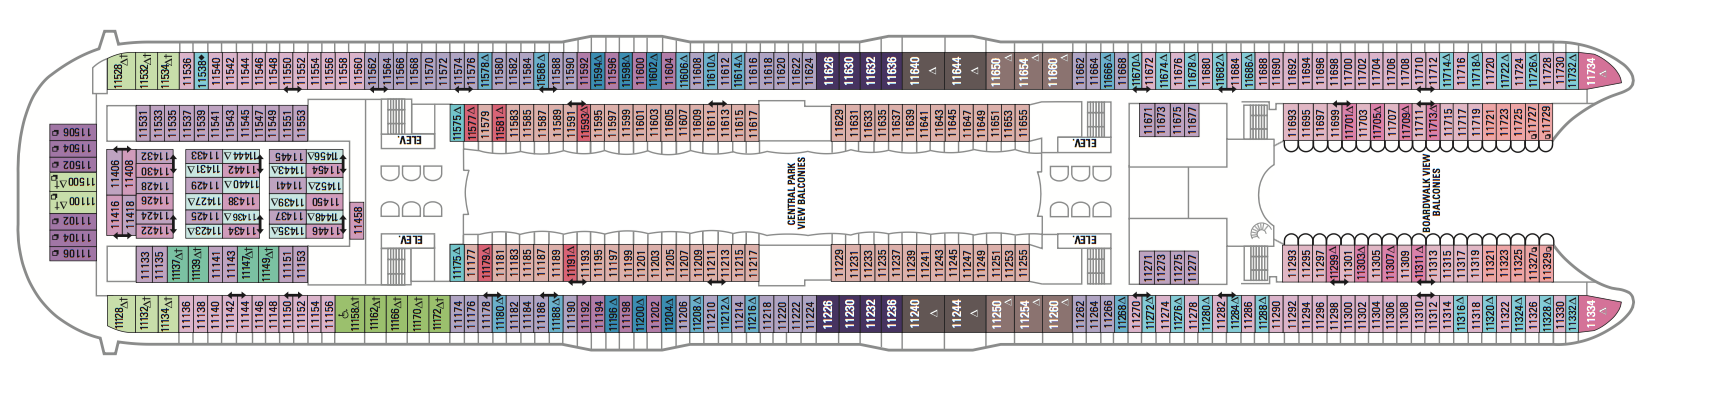 Royal Caribbean International Symphony of the Seas Deck Plans Deck 11.png